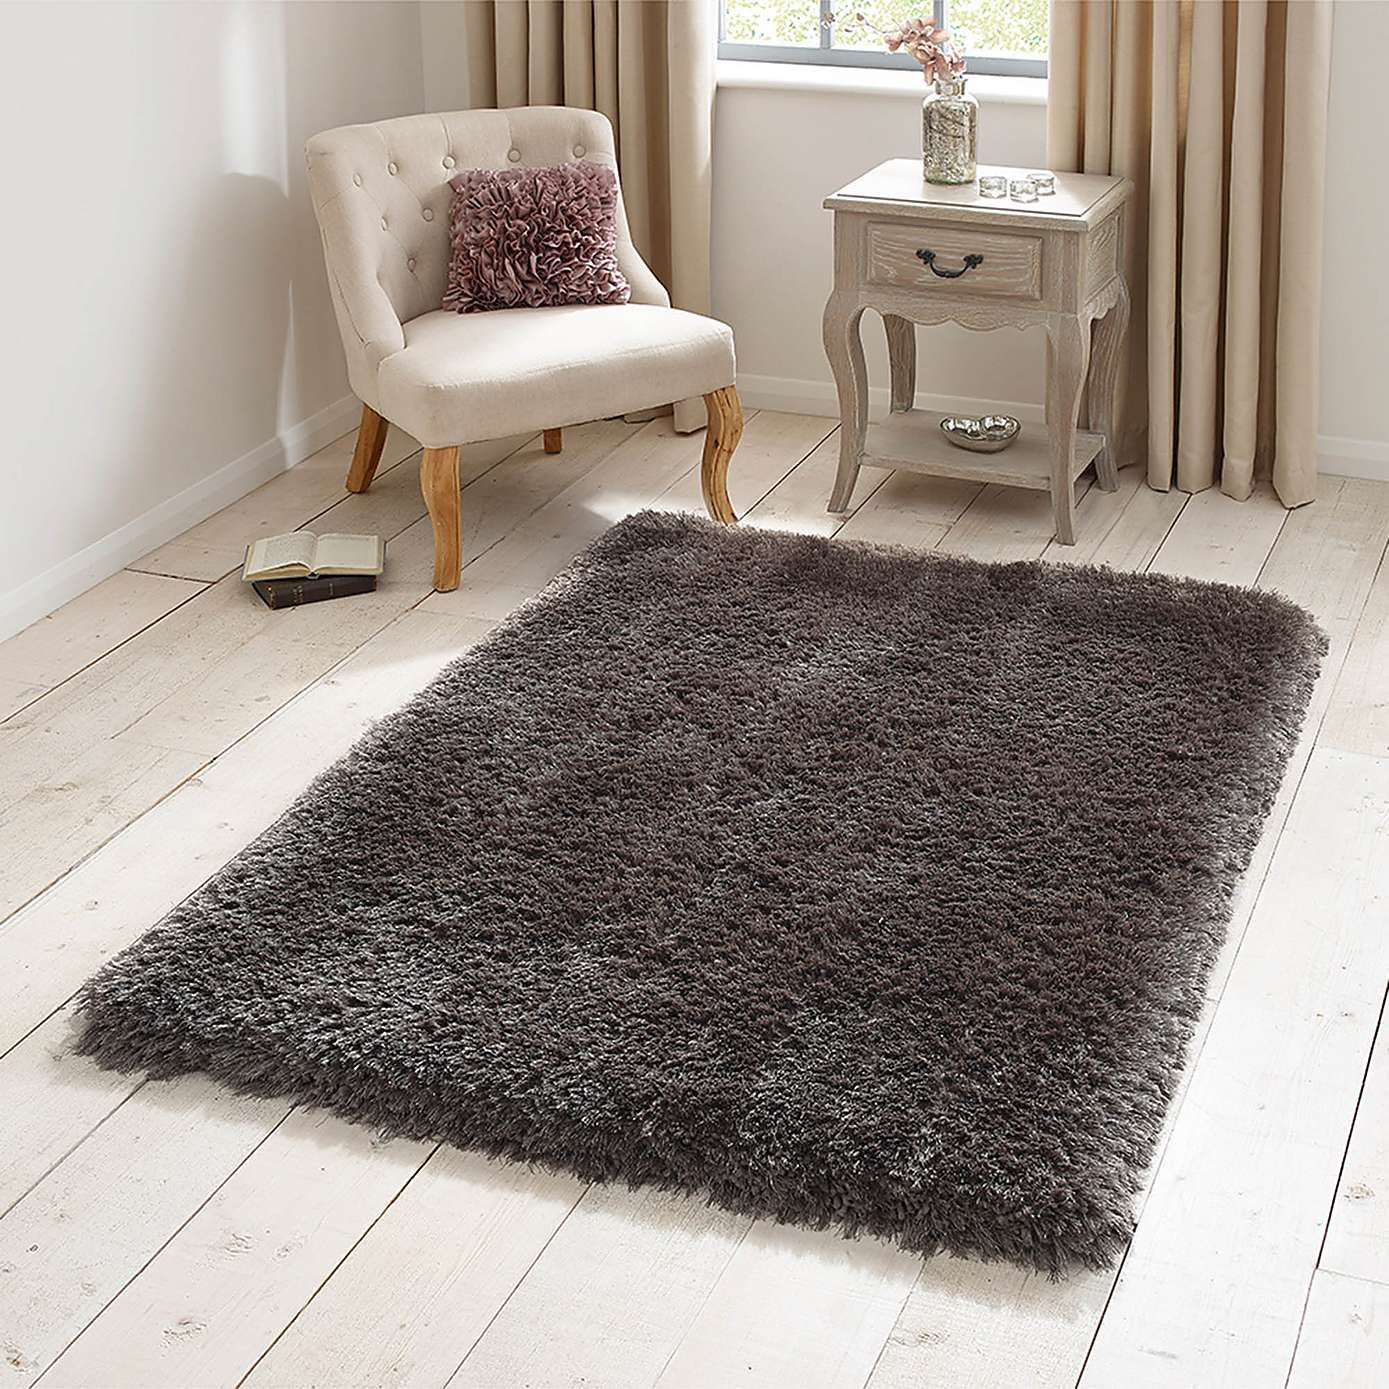 Steel Jewel Shaggy Rug